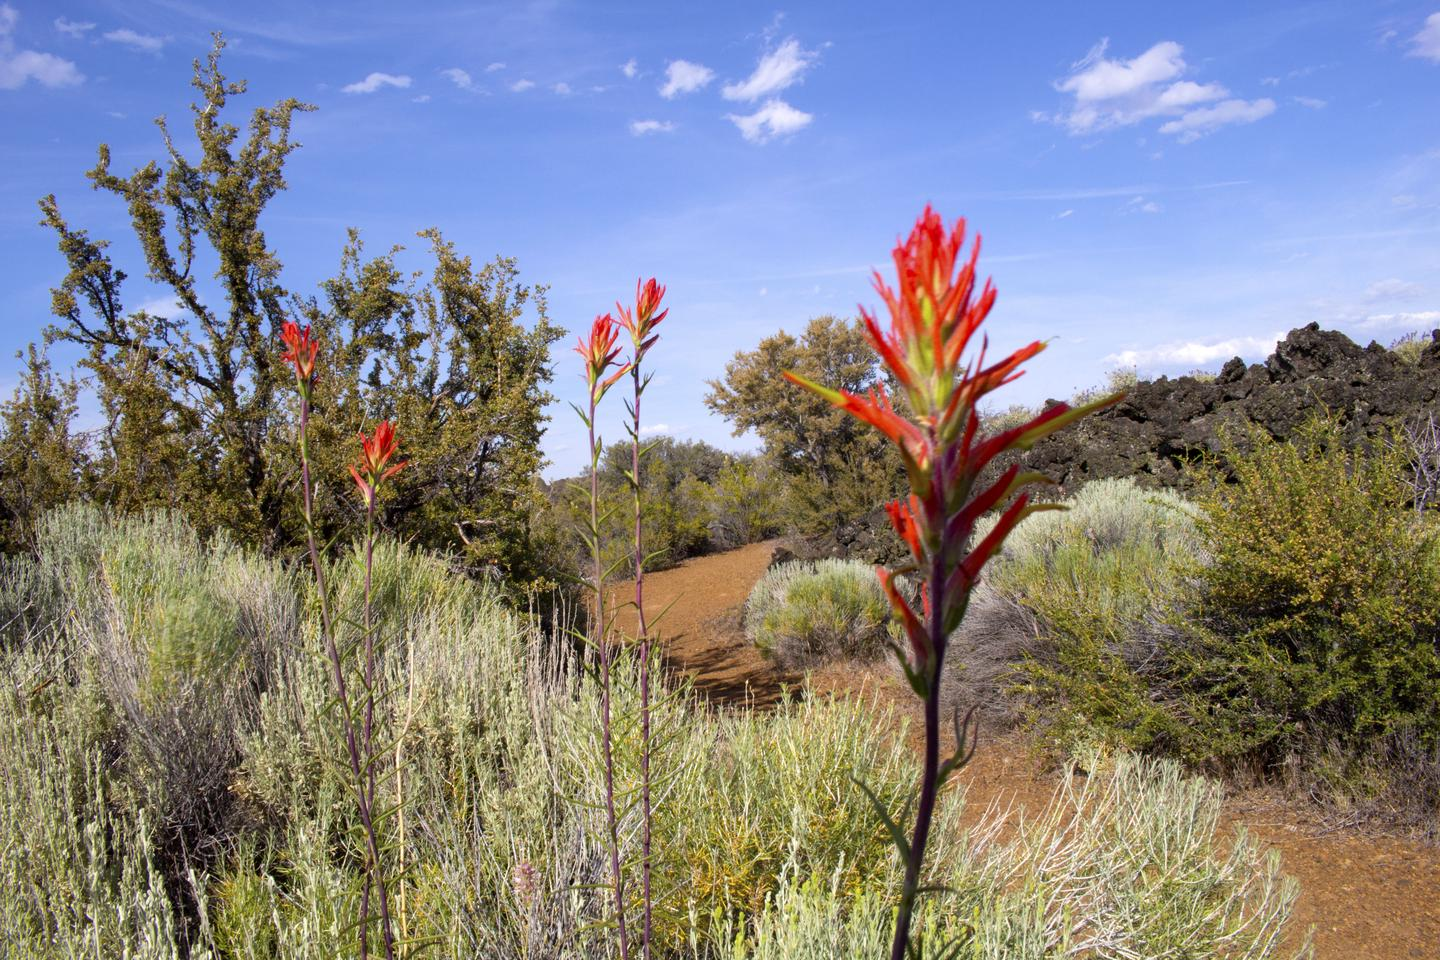 Paintbrush along park trail